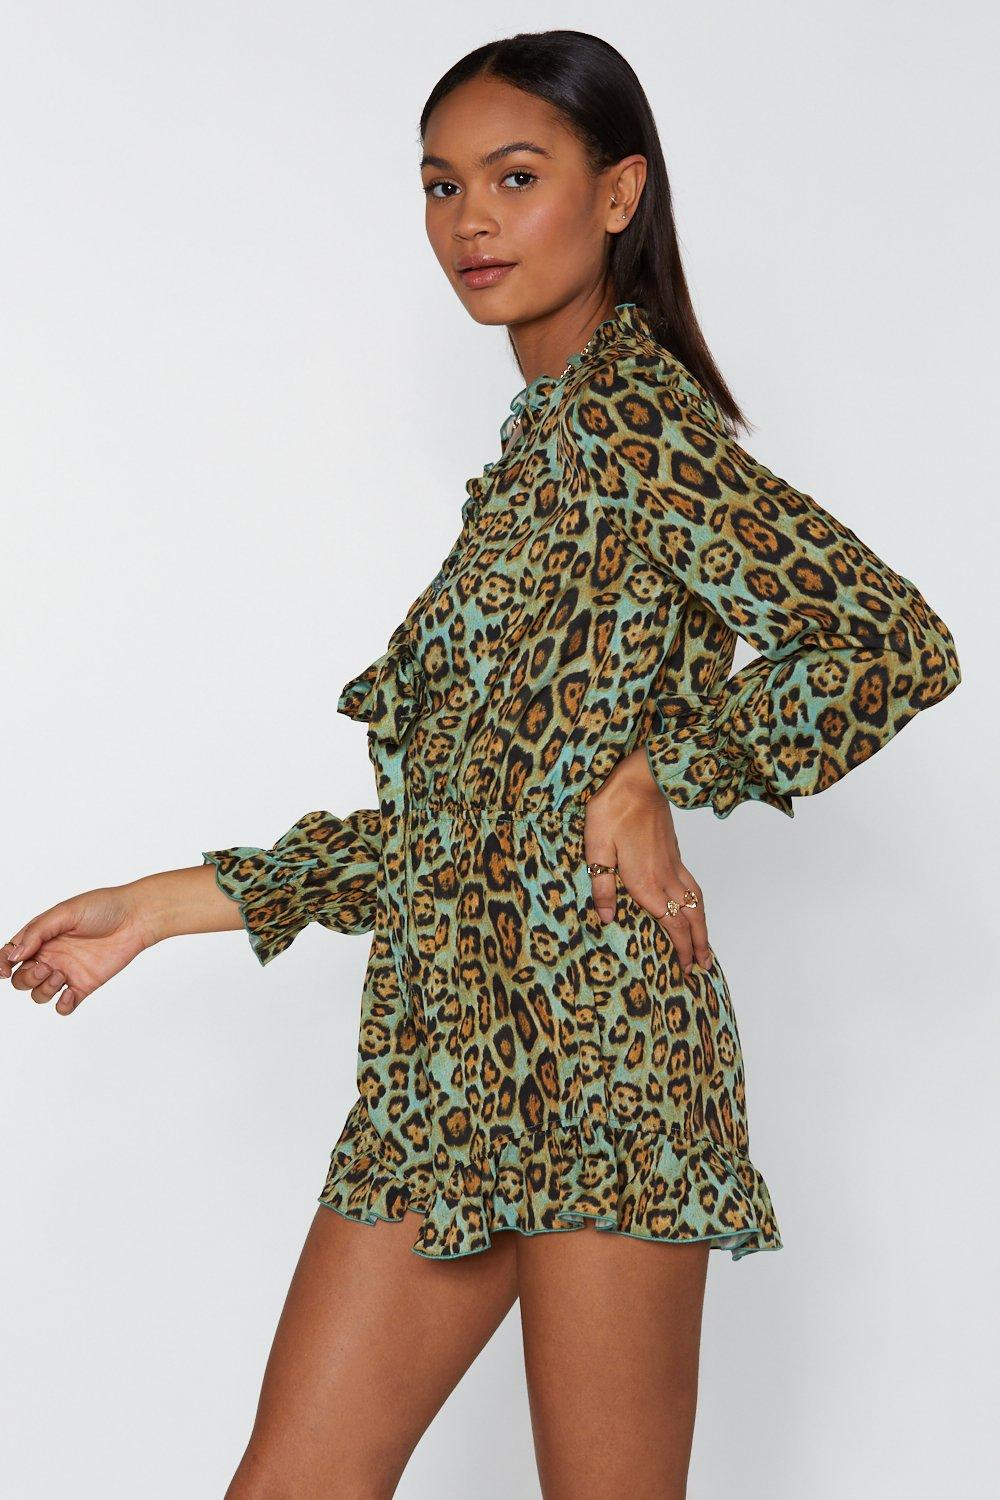 52fde860f8 Prowling Around Leopard Ruffle Playsuit. Hover to zoom